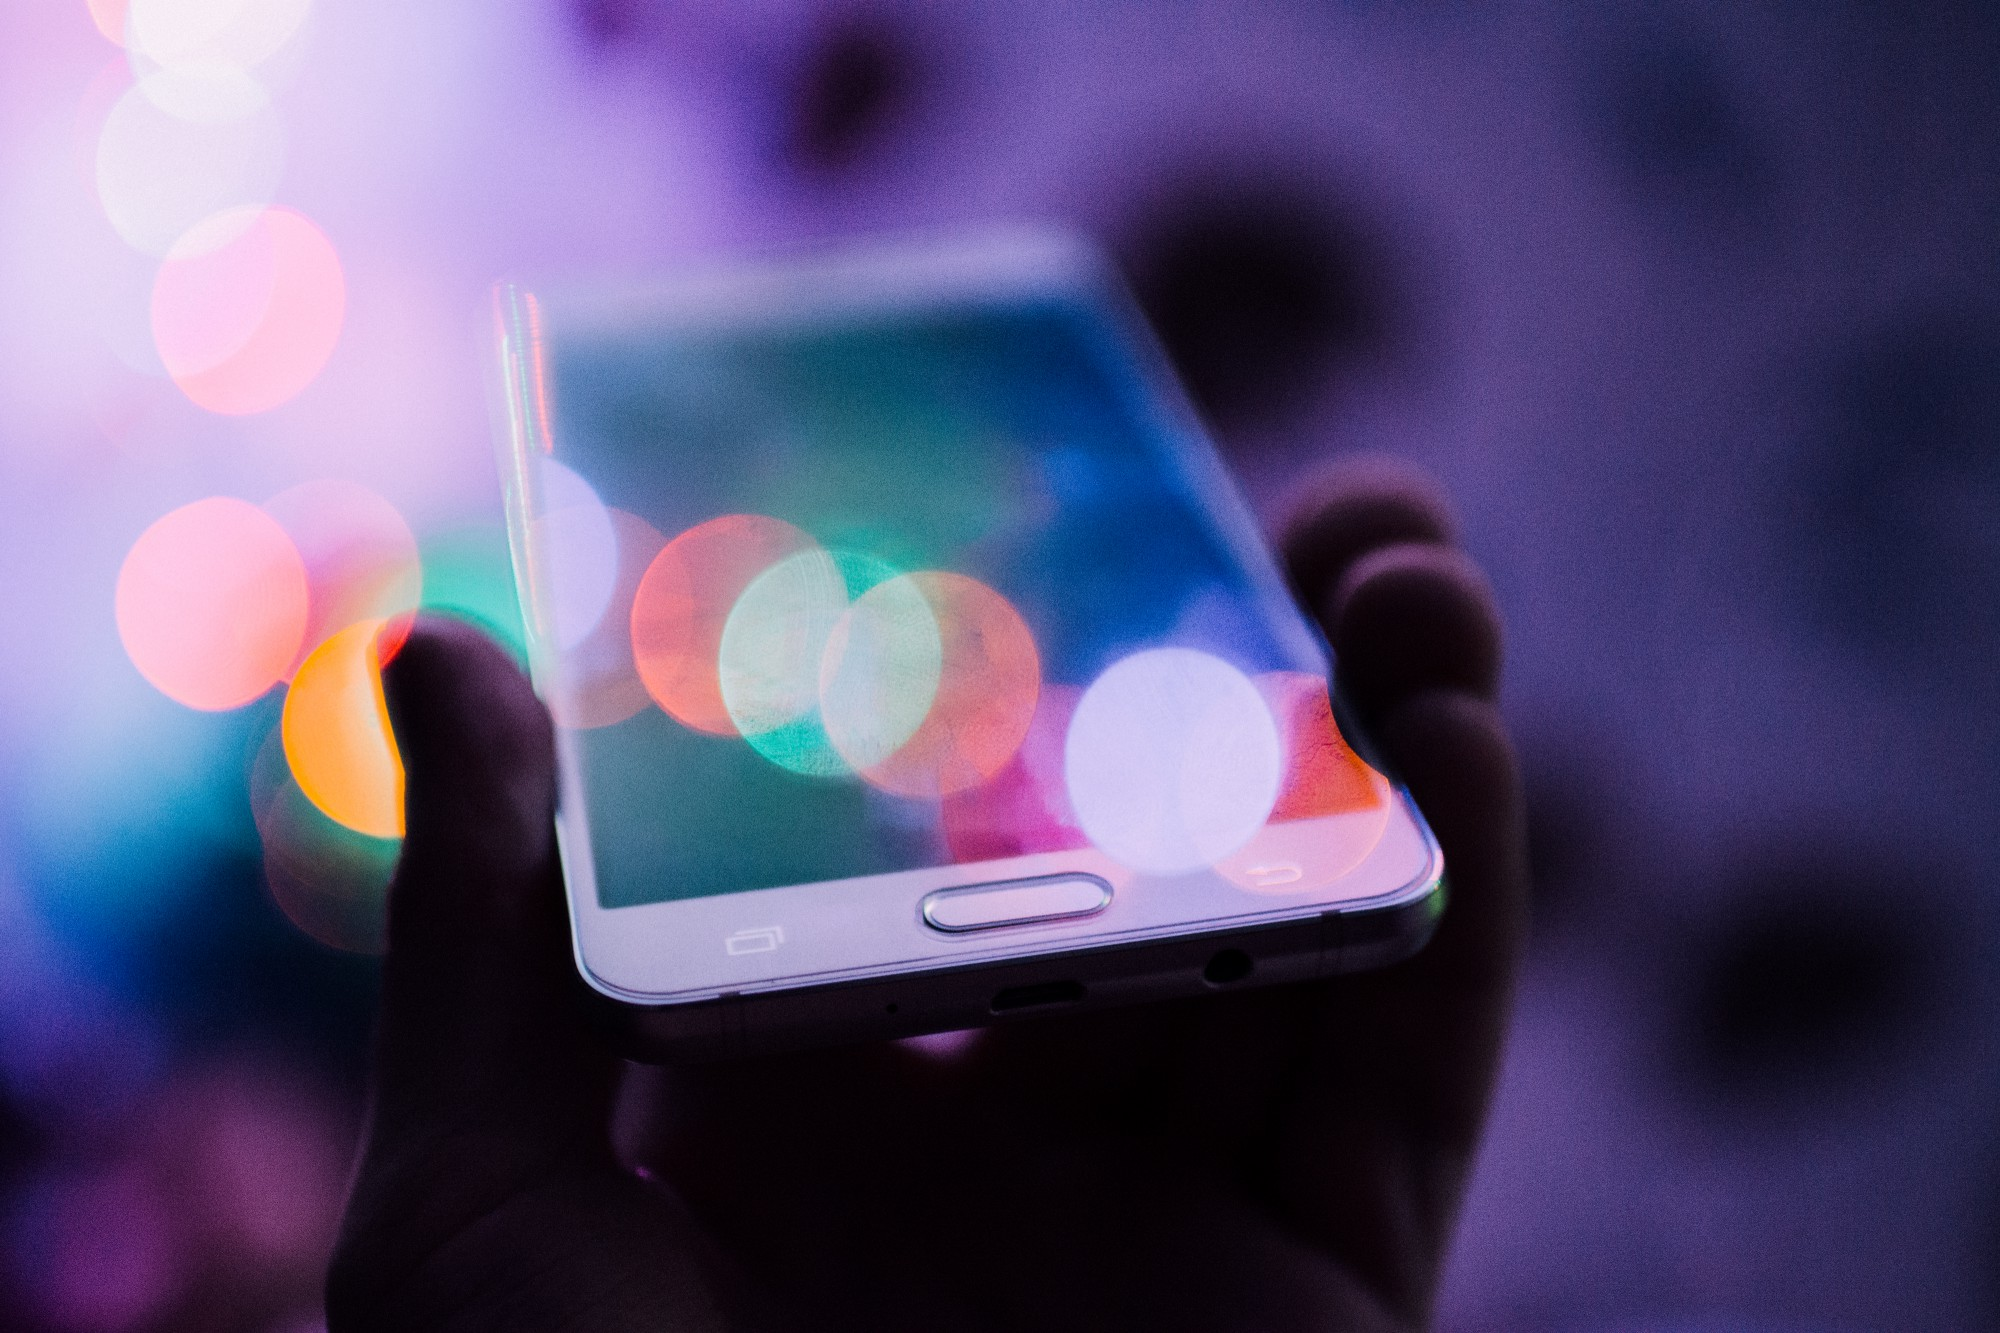 A hand holding up an iPhone in a flurry of colors